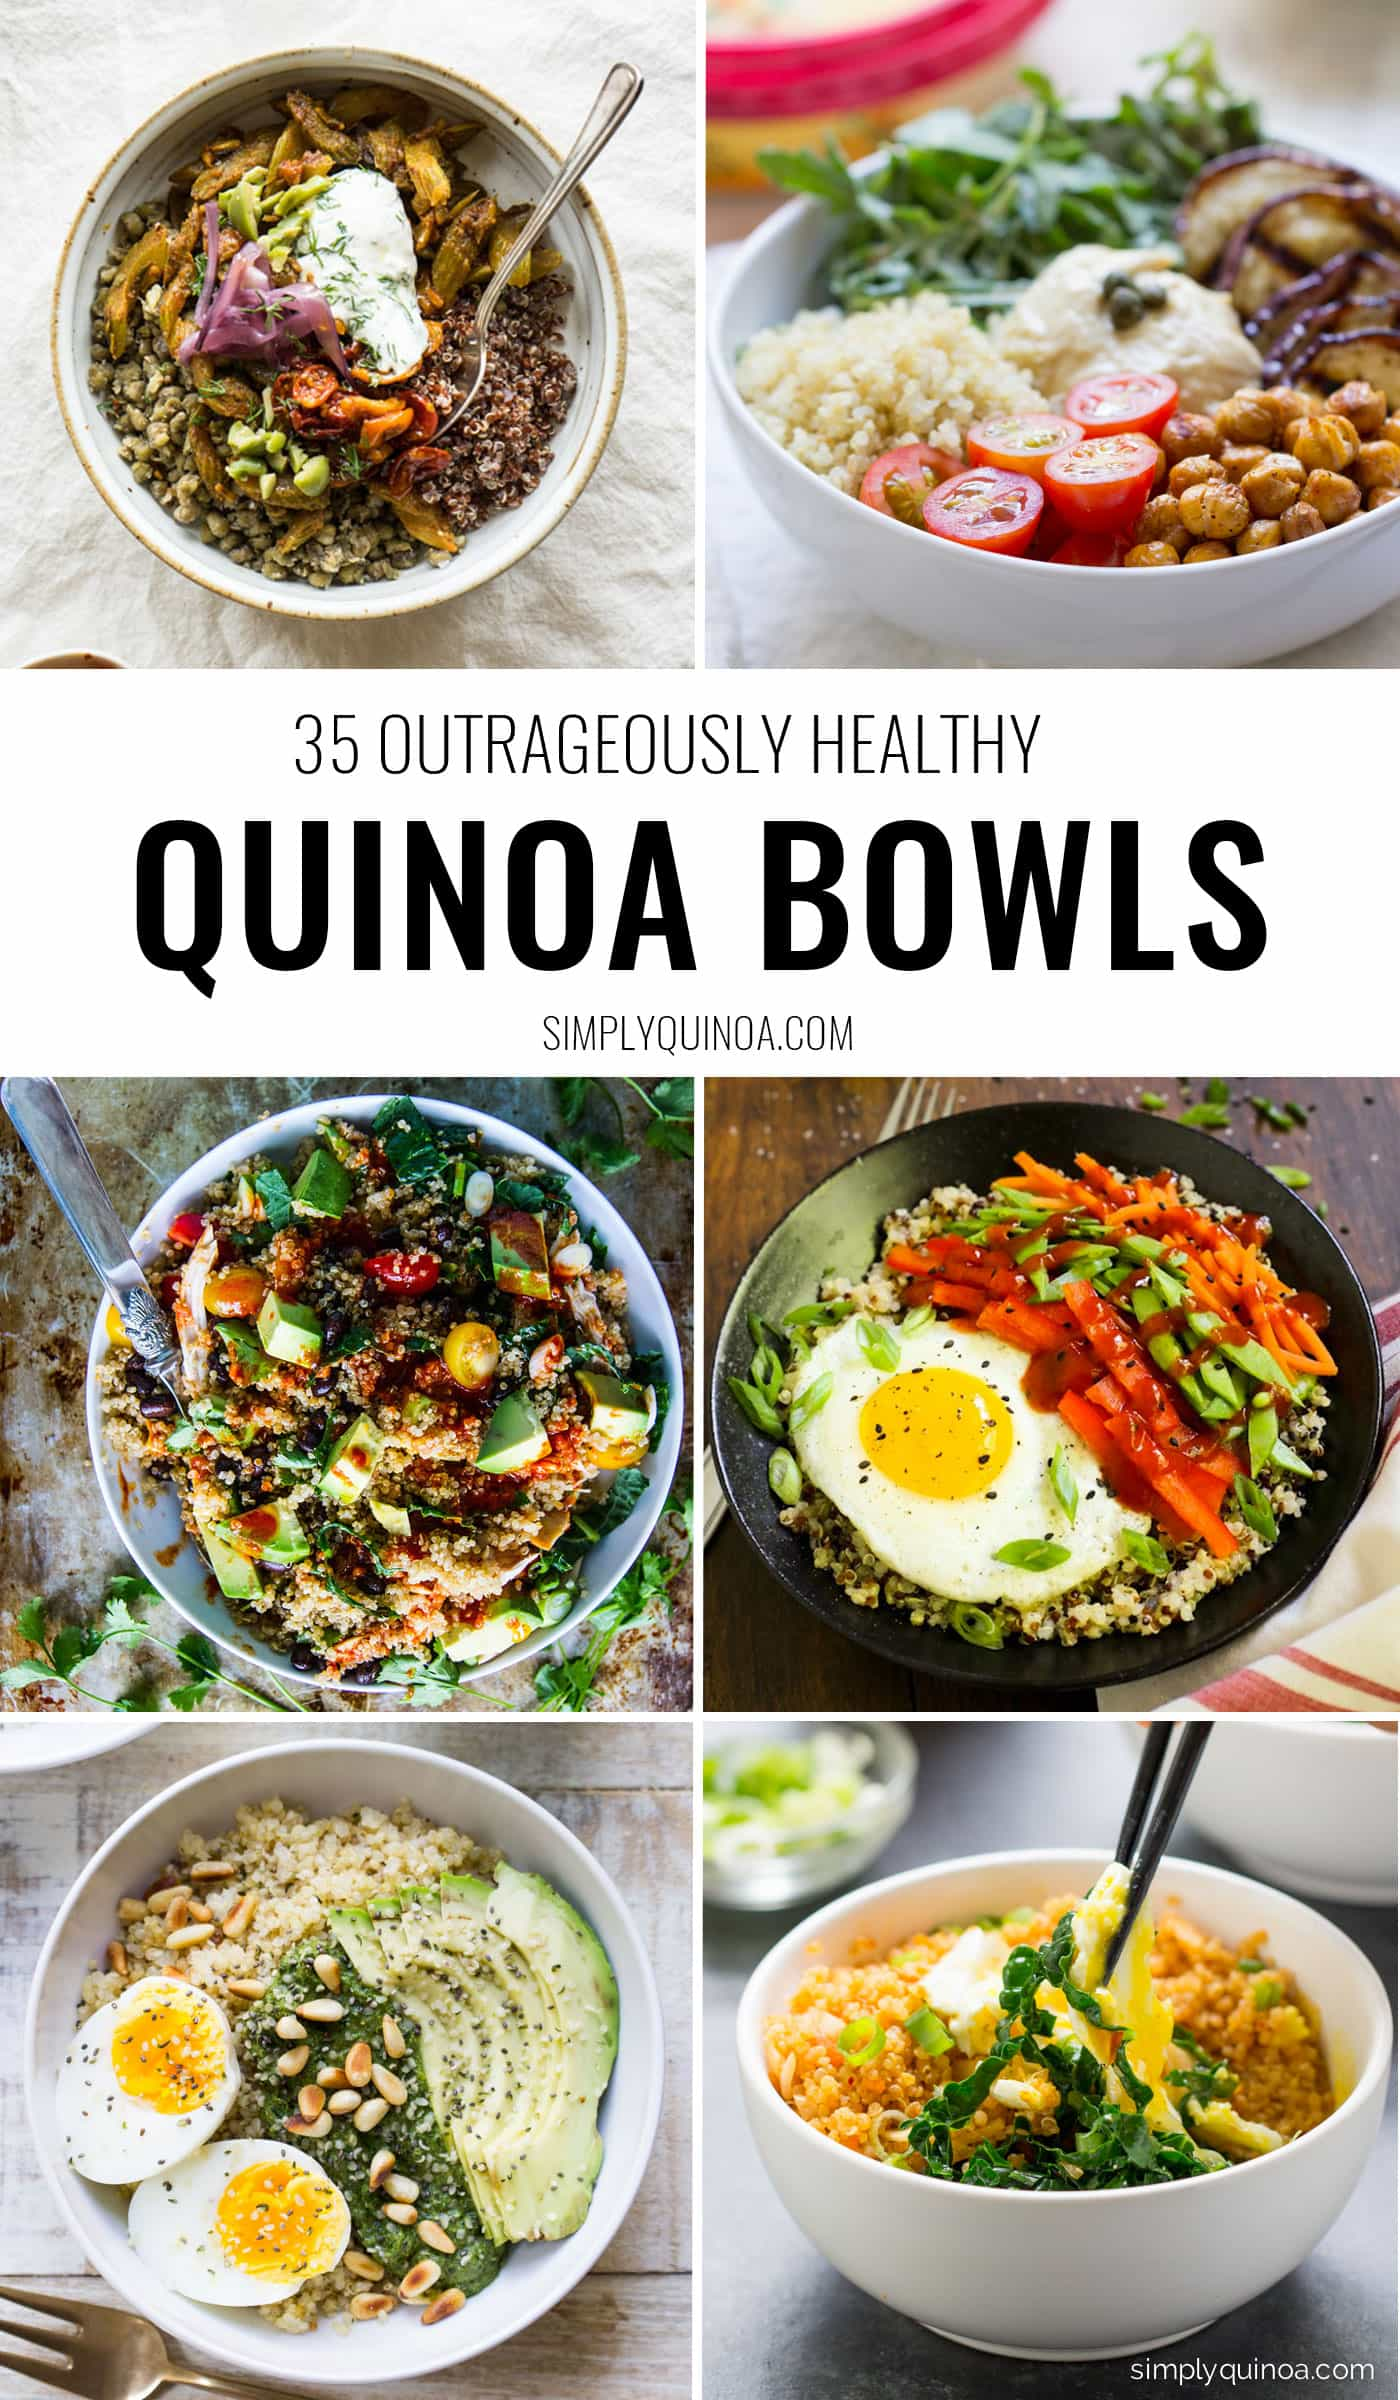 Bored with the same old quinoa recipe? Then you've got to try one of these OUTRAGEOUSLY delicious quinoa bowls! Packed with superfoods, easy to make and healthy too - there's a recipe for every type on this list.